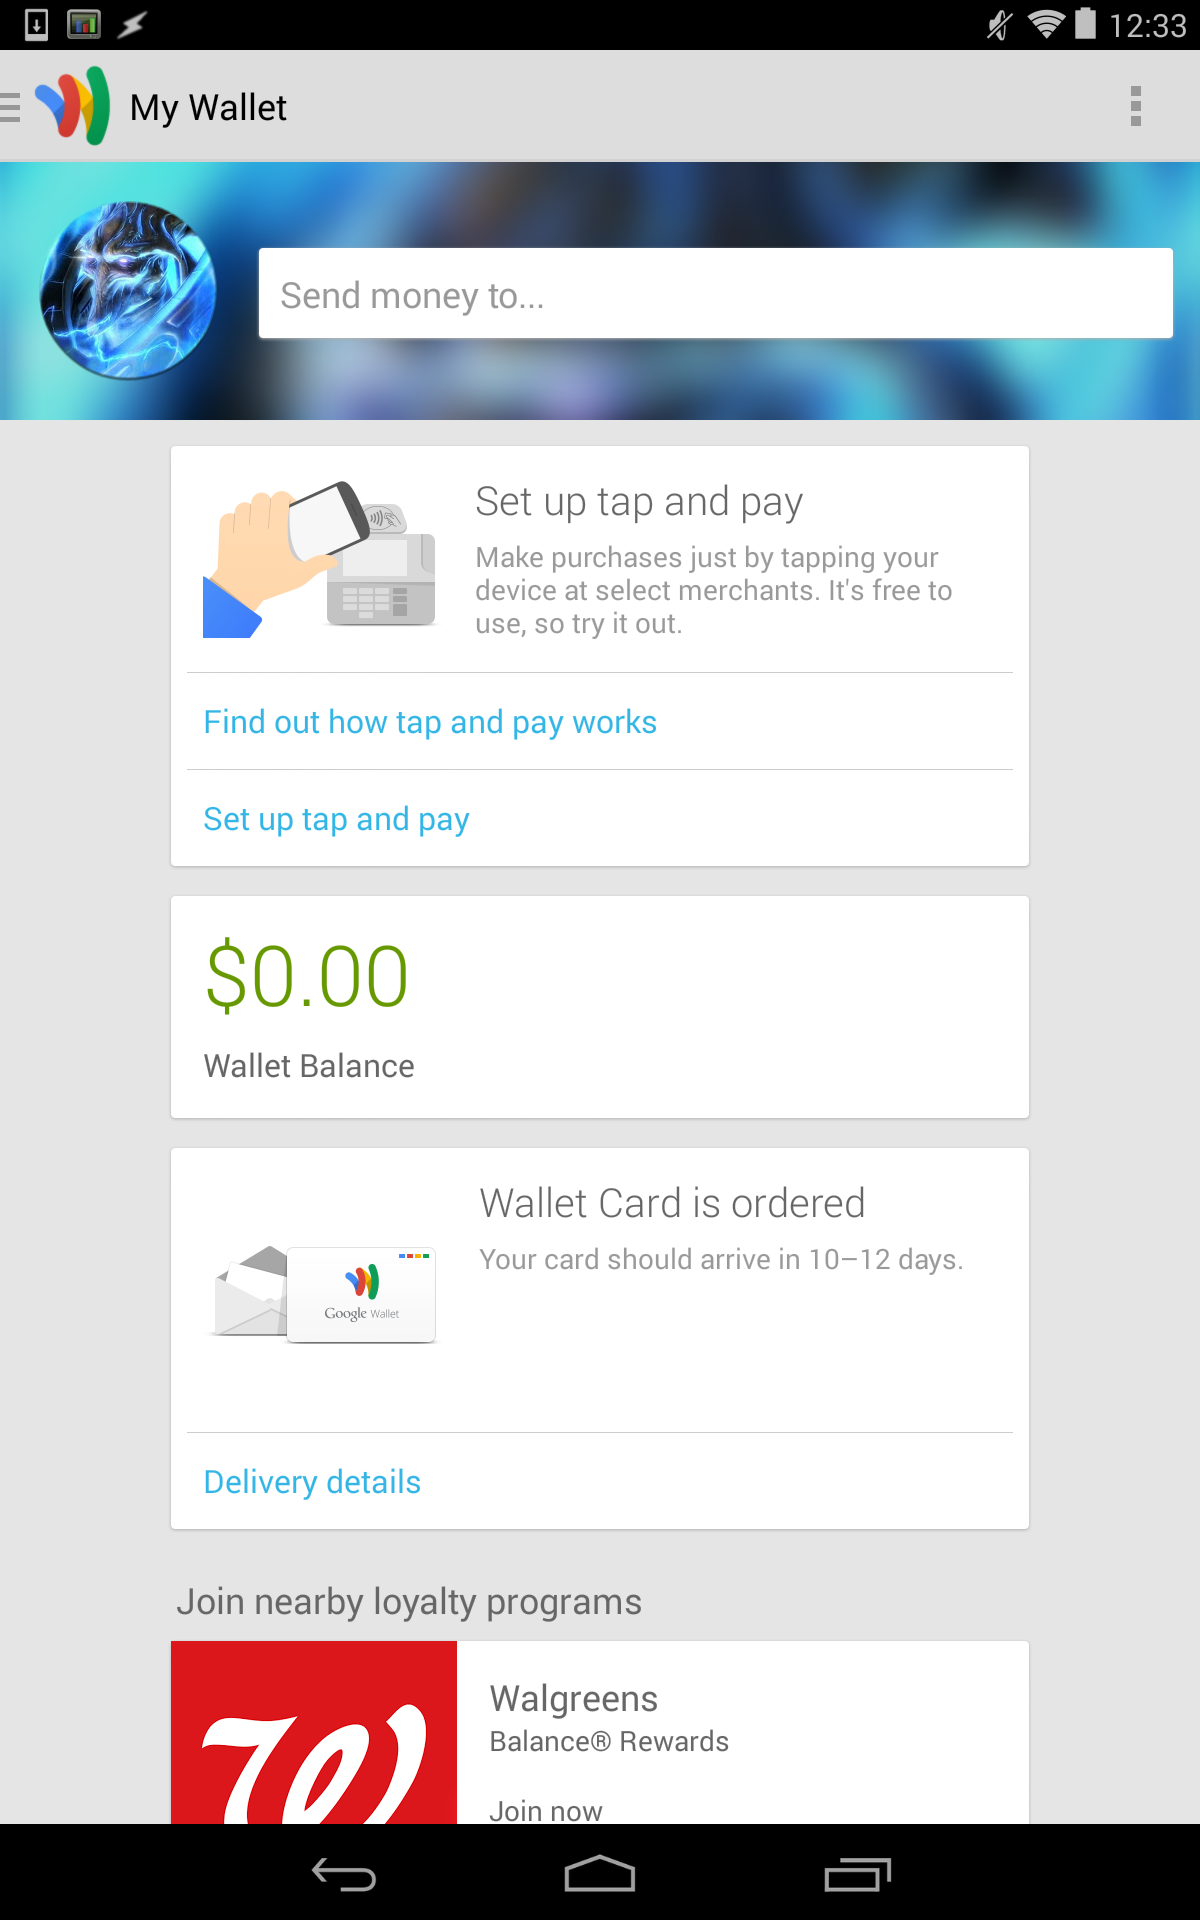 New Google Wallet Update Adds Tap & Pay Support To KitKat Devices, Even Those Running Unofficial KitKat Builds (US Only)